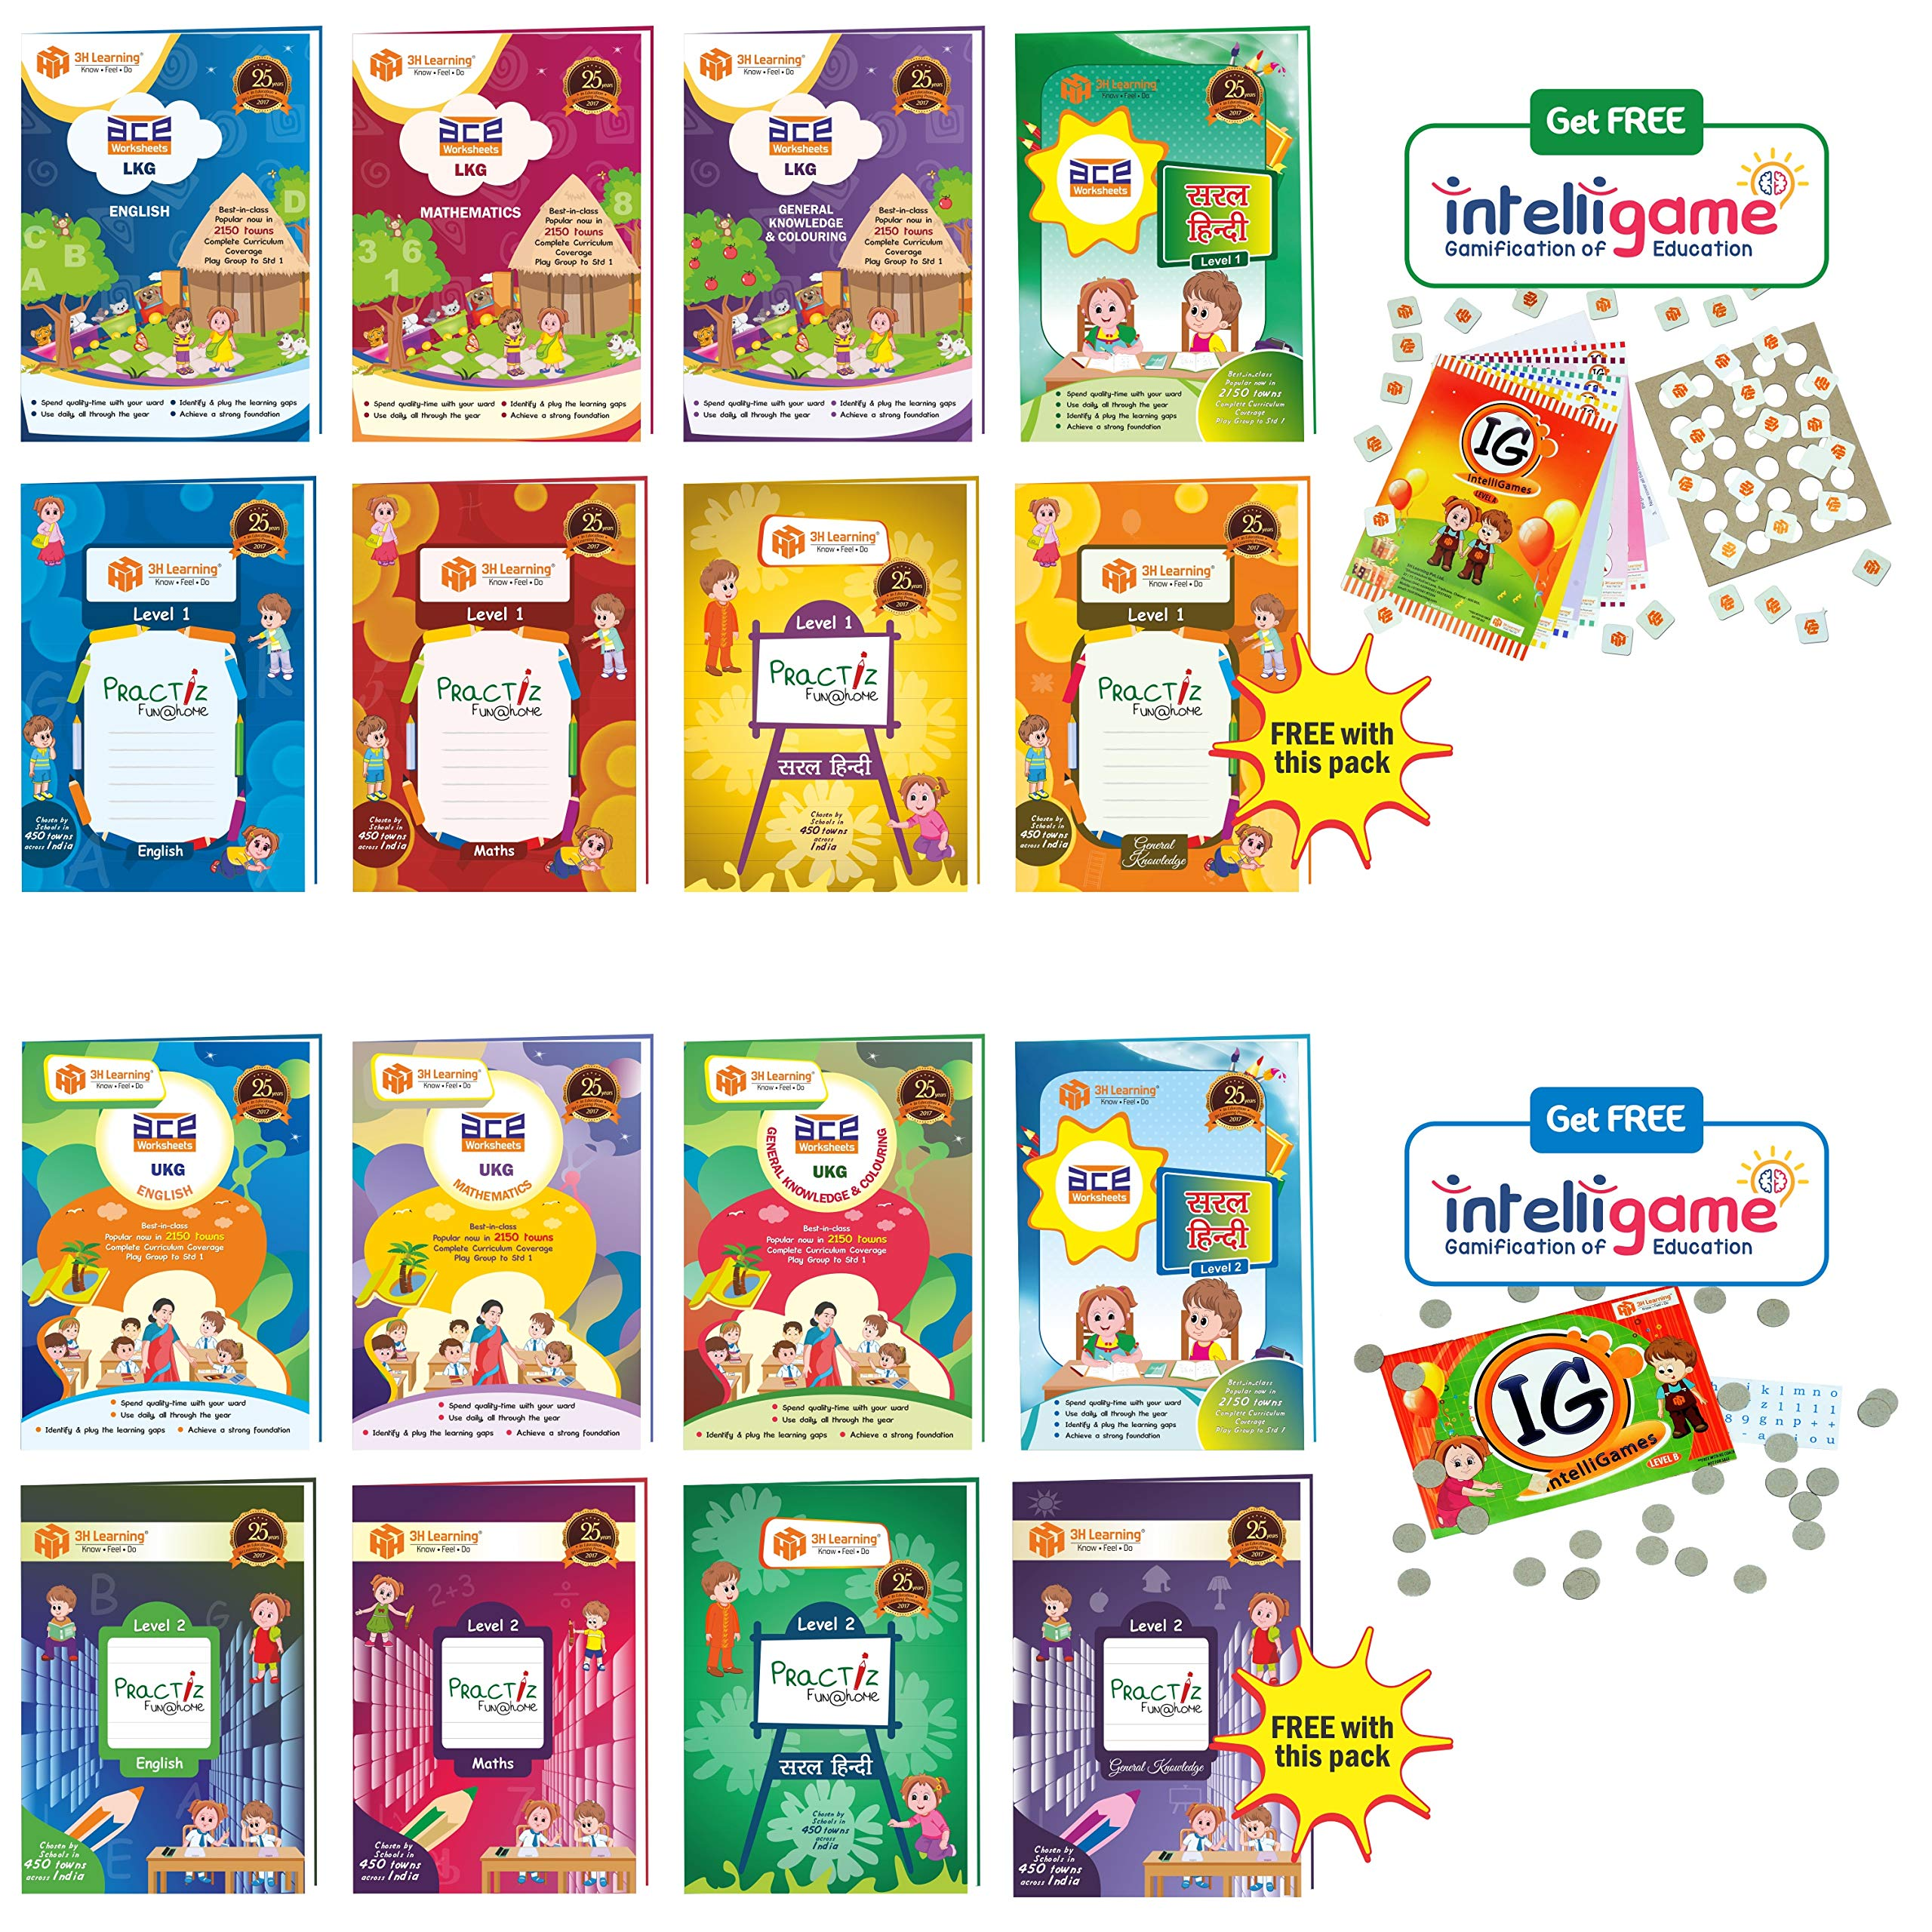 LKG & UKG Kids (3-6 Years) All-in-One 1248 Pages ACE Early Learning Worksheets for Nursery Kids , Toddlers, Pre Schoolers & Writing Practice in English, Mathematics, Hindi, General Knowledge / EVS (KG 1 & 2) 16 Books Bundle